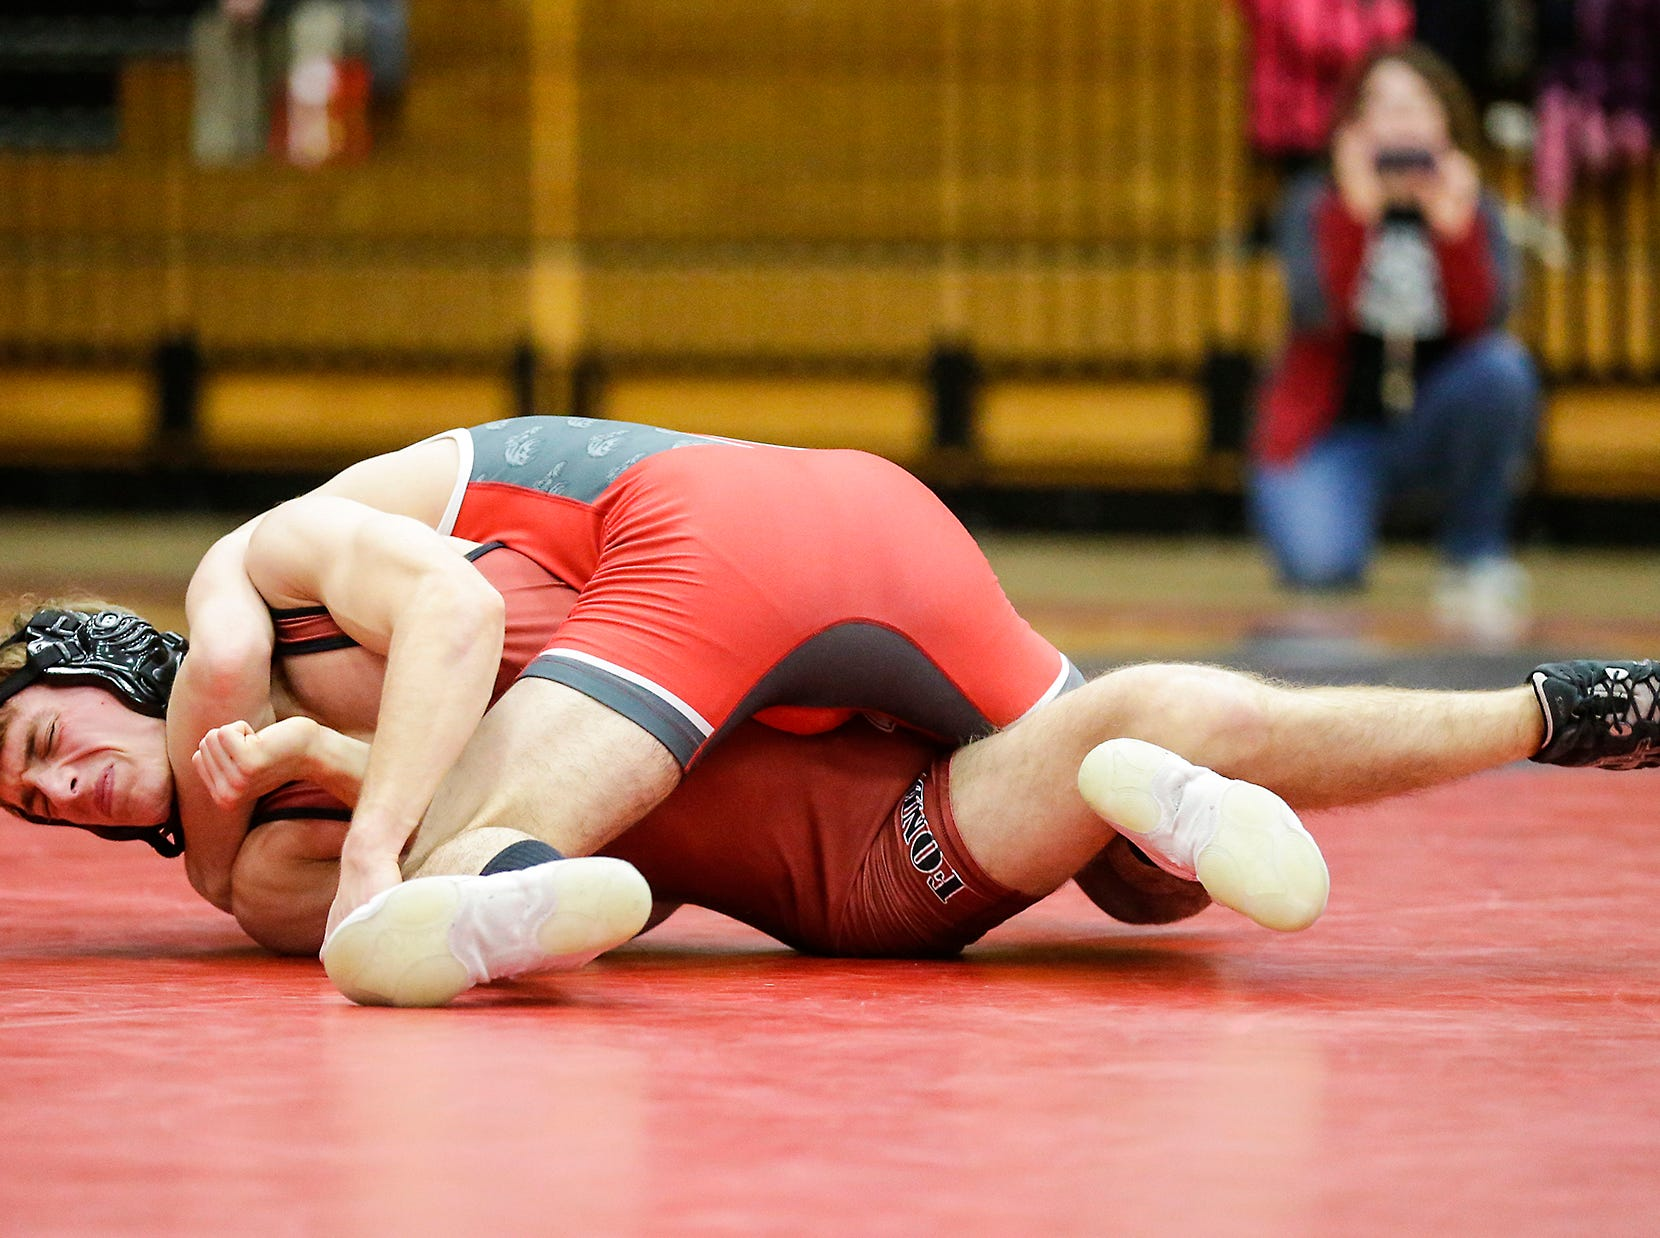 Fond du Lac High School wrestling's Andrew Nehls wrestles against Hortonville High School's Eric Barnett in the 126 weight class during their meet Thrusday, December 6, 2018 in Fond du Lac, Wisconsin. Barnett won the match with a pin and Fond du Lac won the meet 51-18. Doug Raflik/USA TODAY NETWORK-Wisconsin